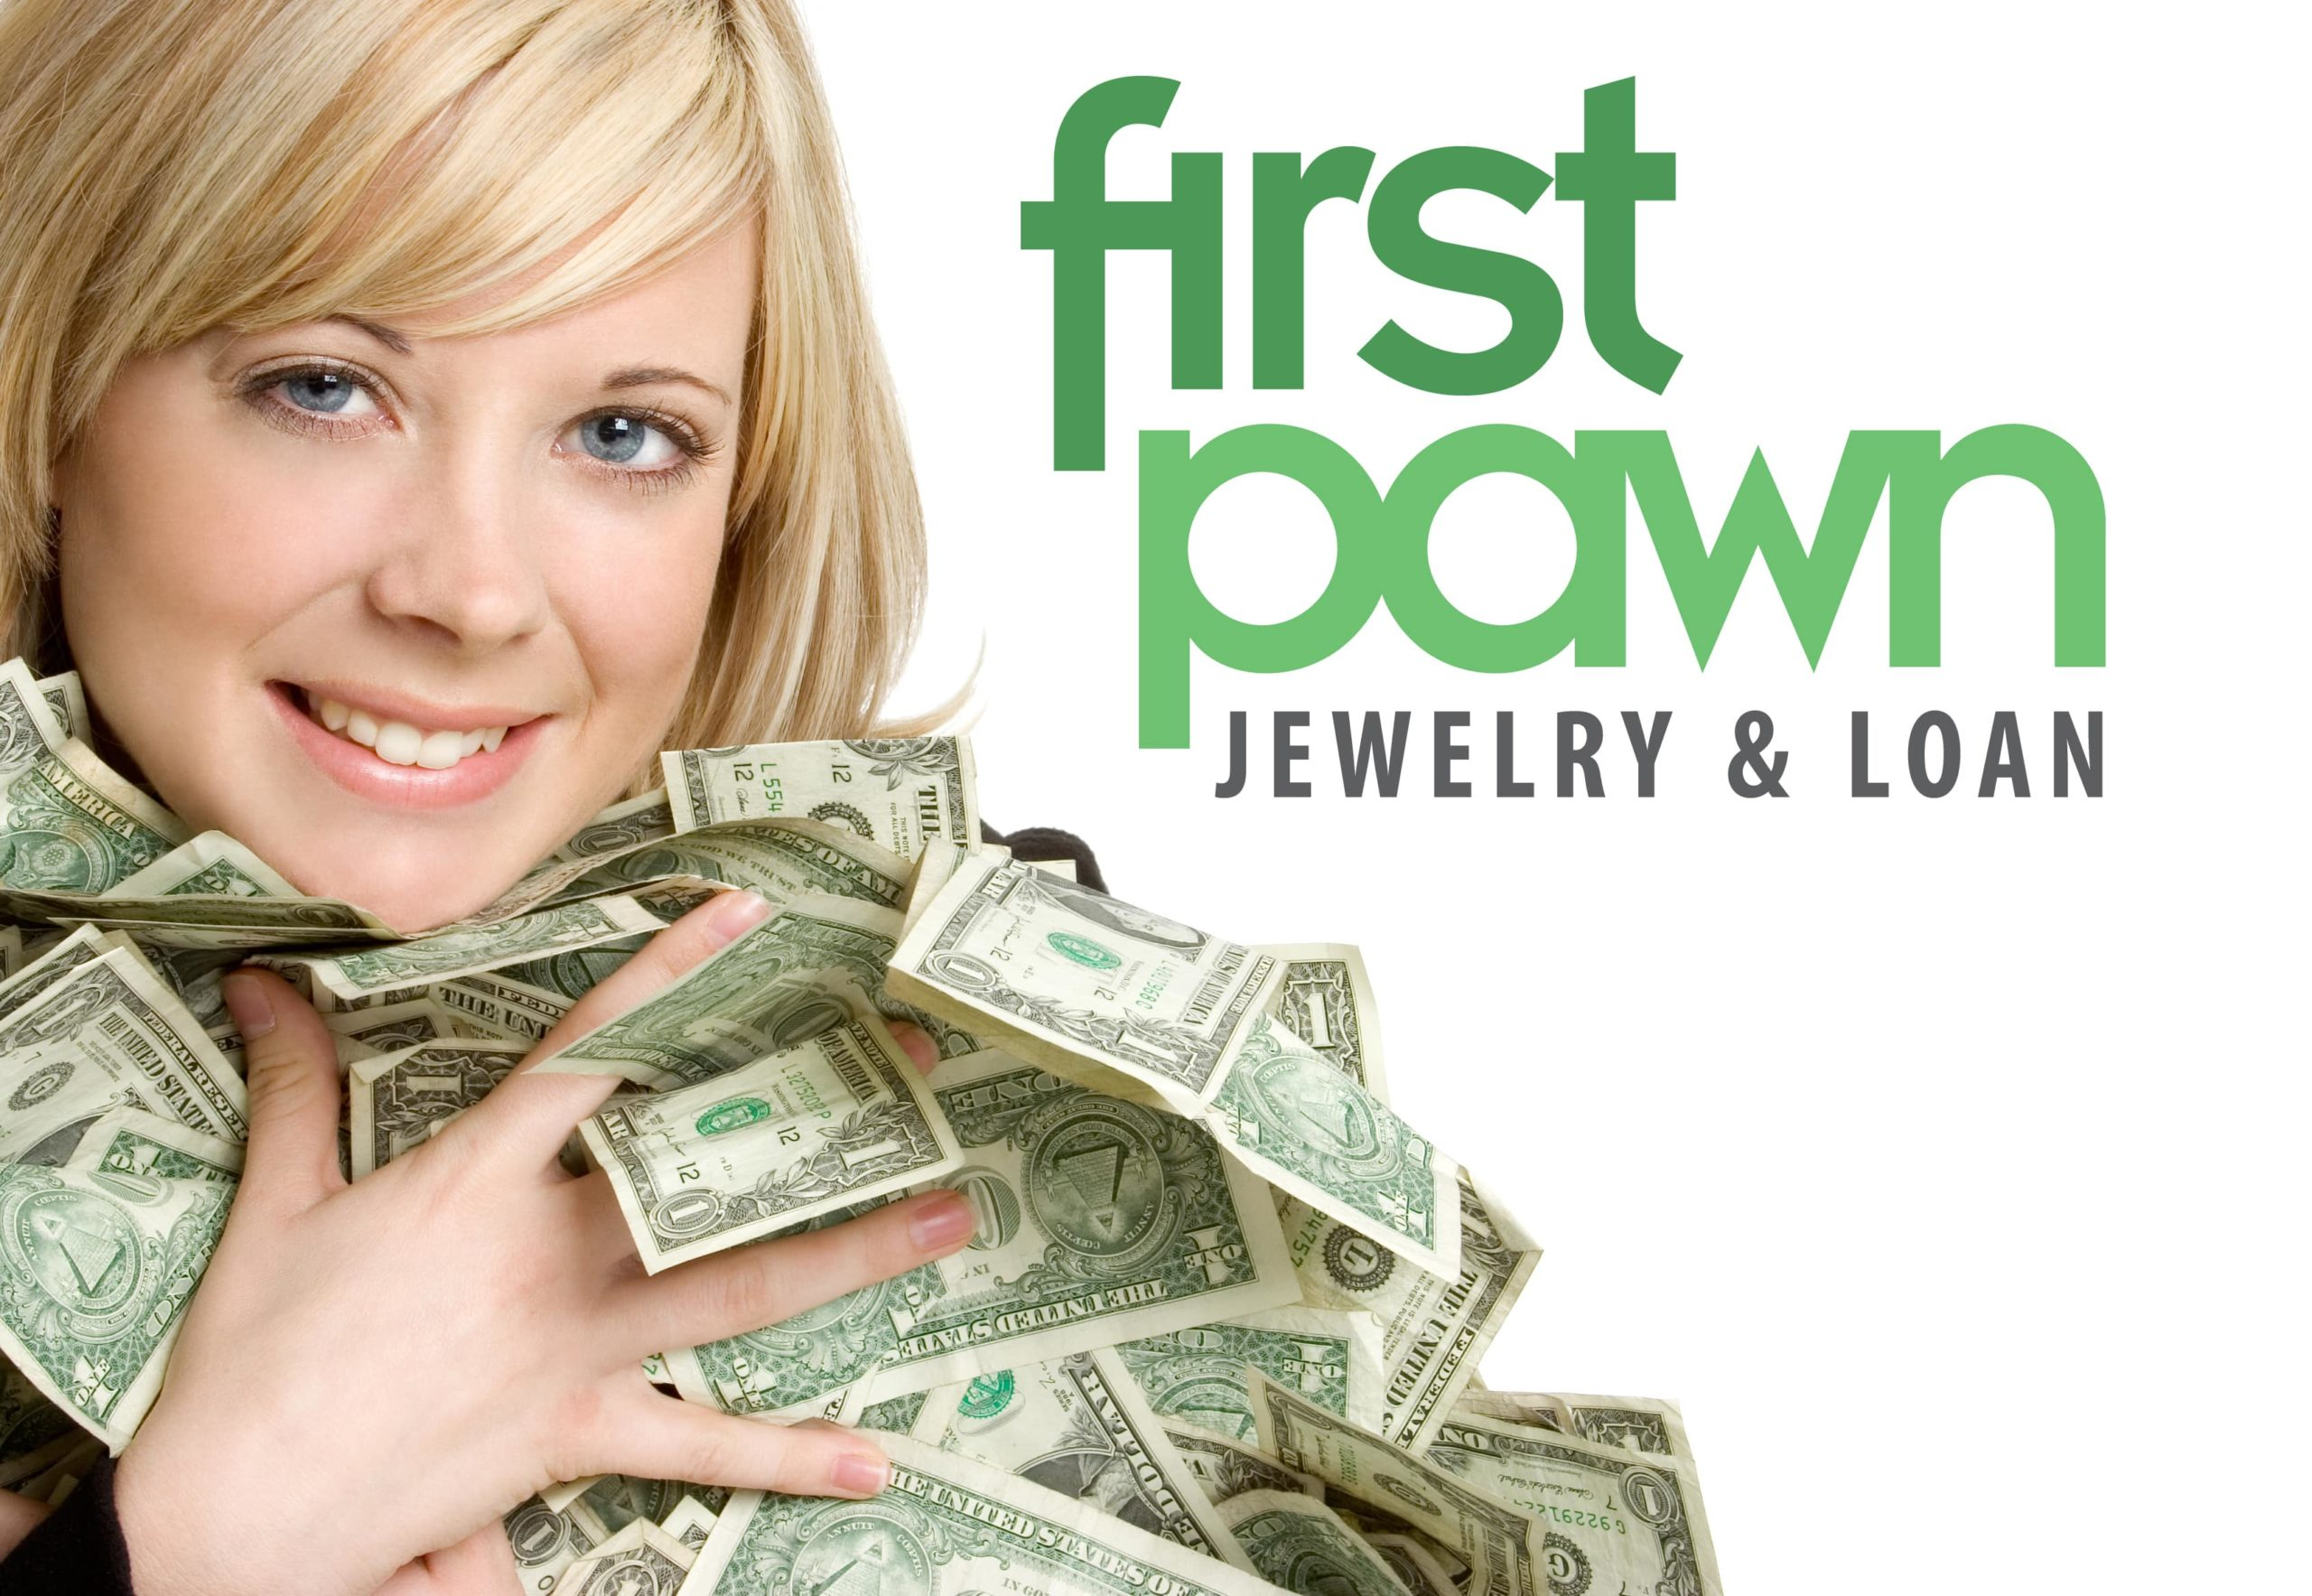 First pawn jewelry and loan cash loans